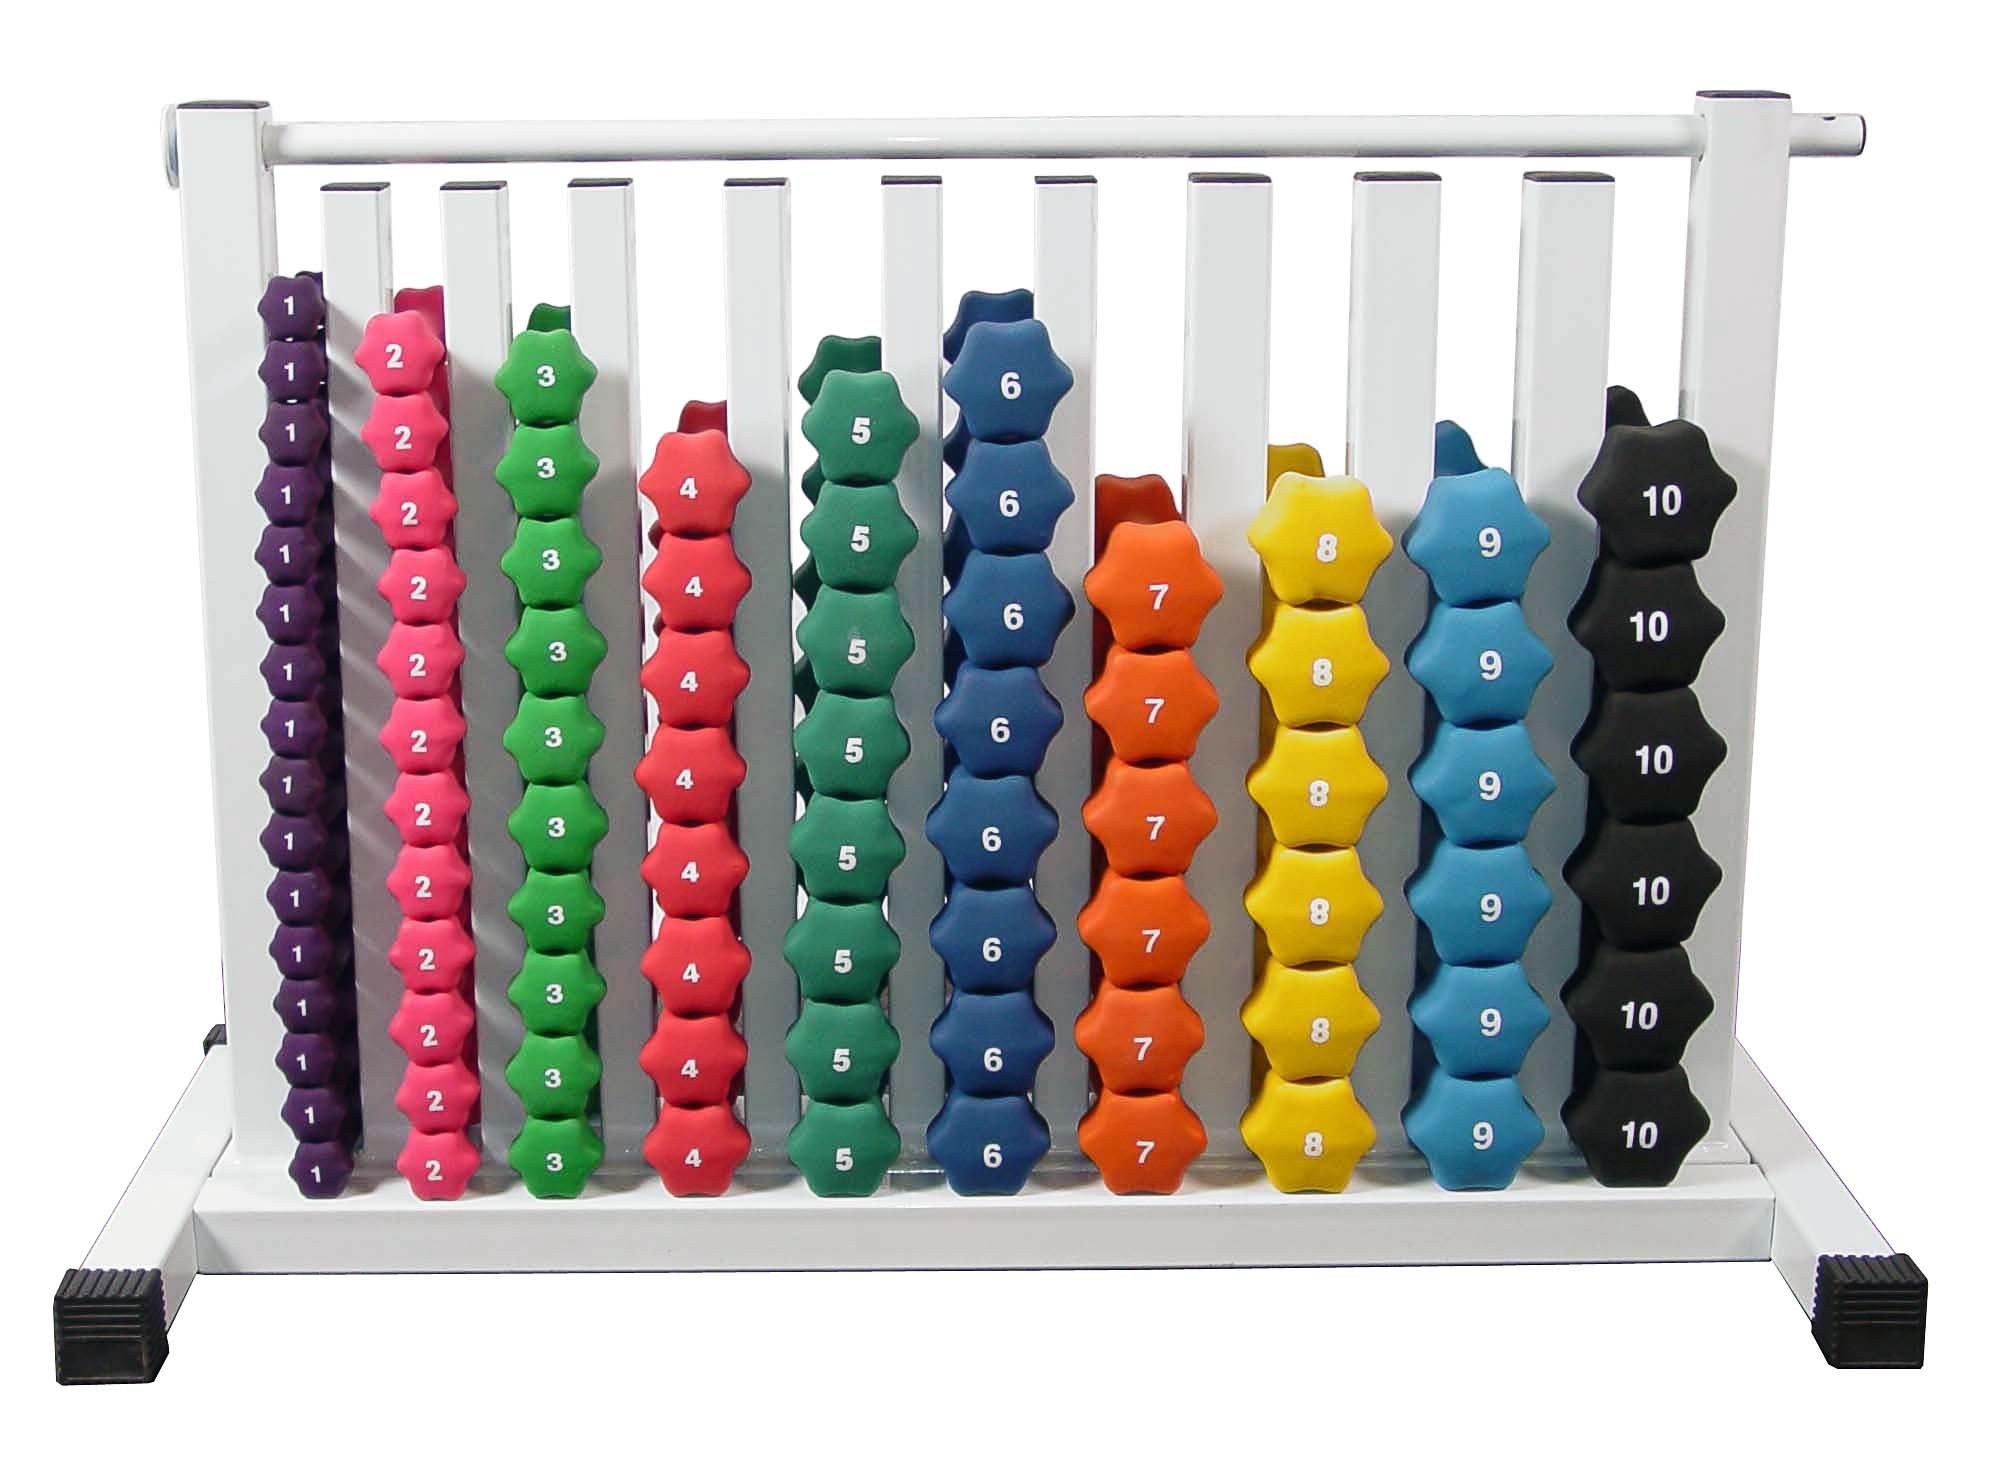 Neoprene Dumbbell Set- 88 Weights w/ Free Safety Rack